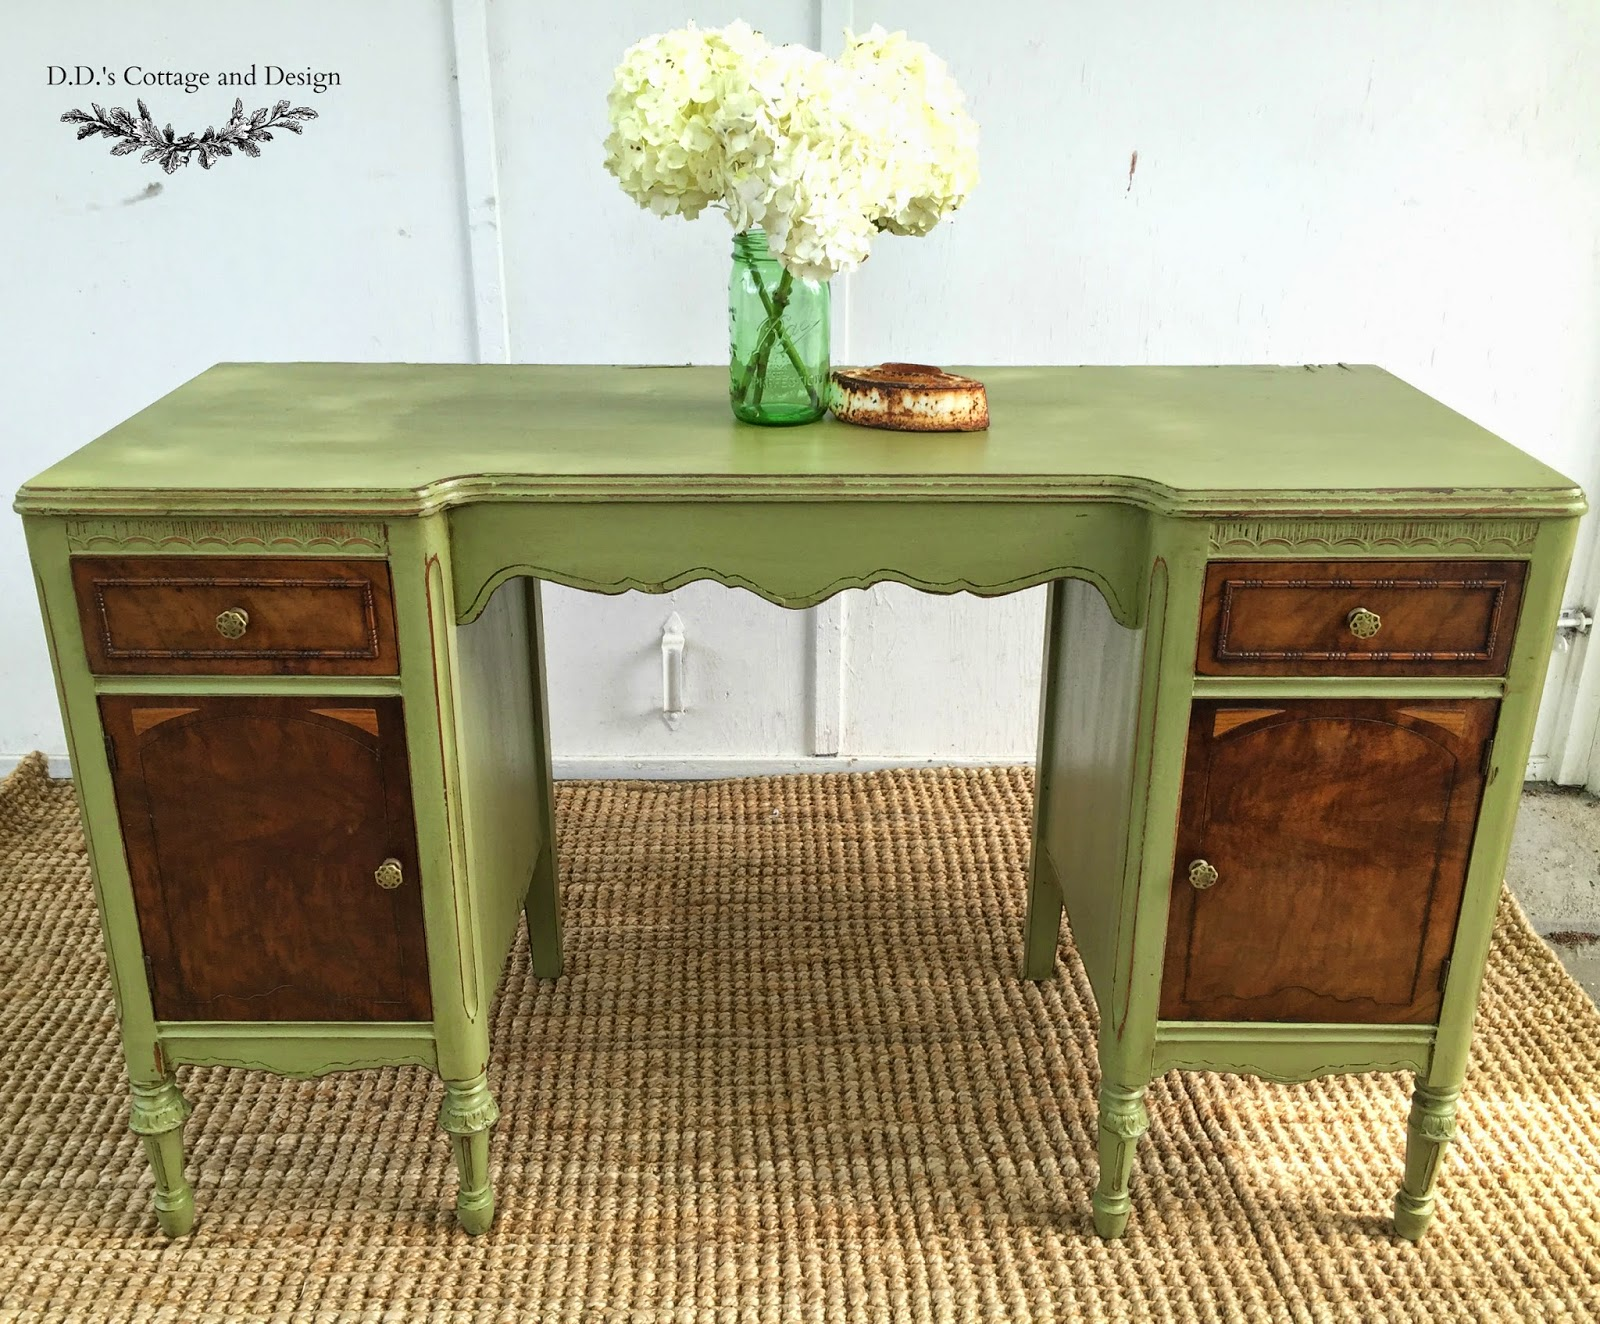 D.D.'s Cottage and Design: Green Desk